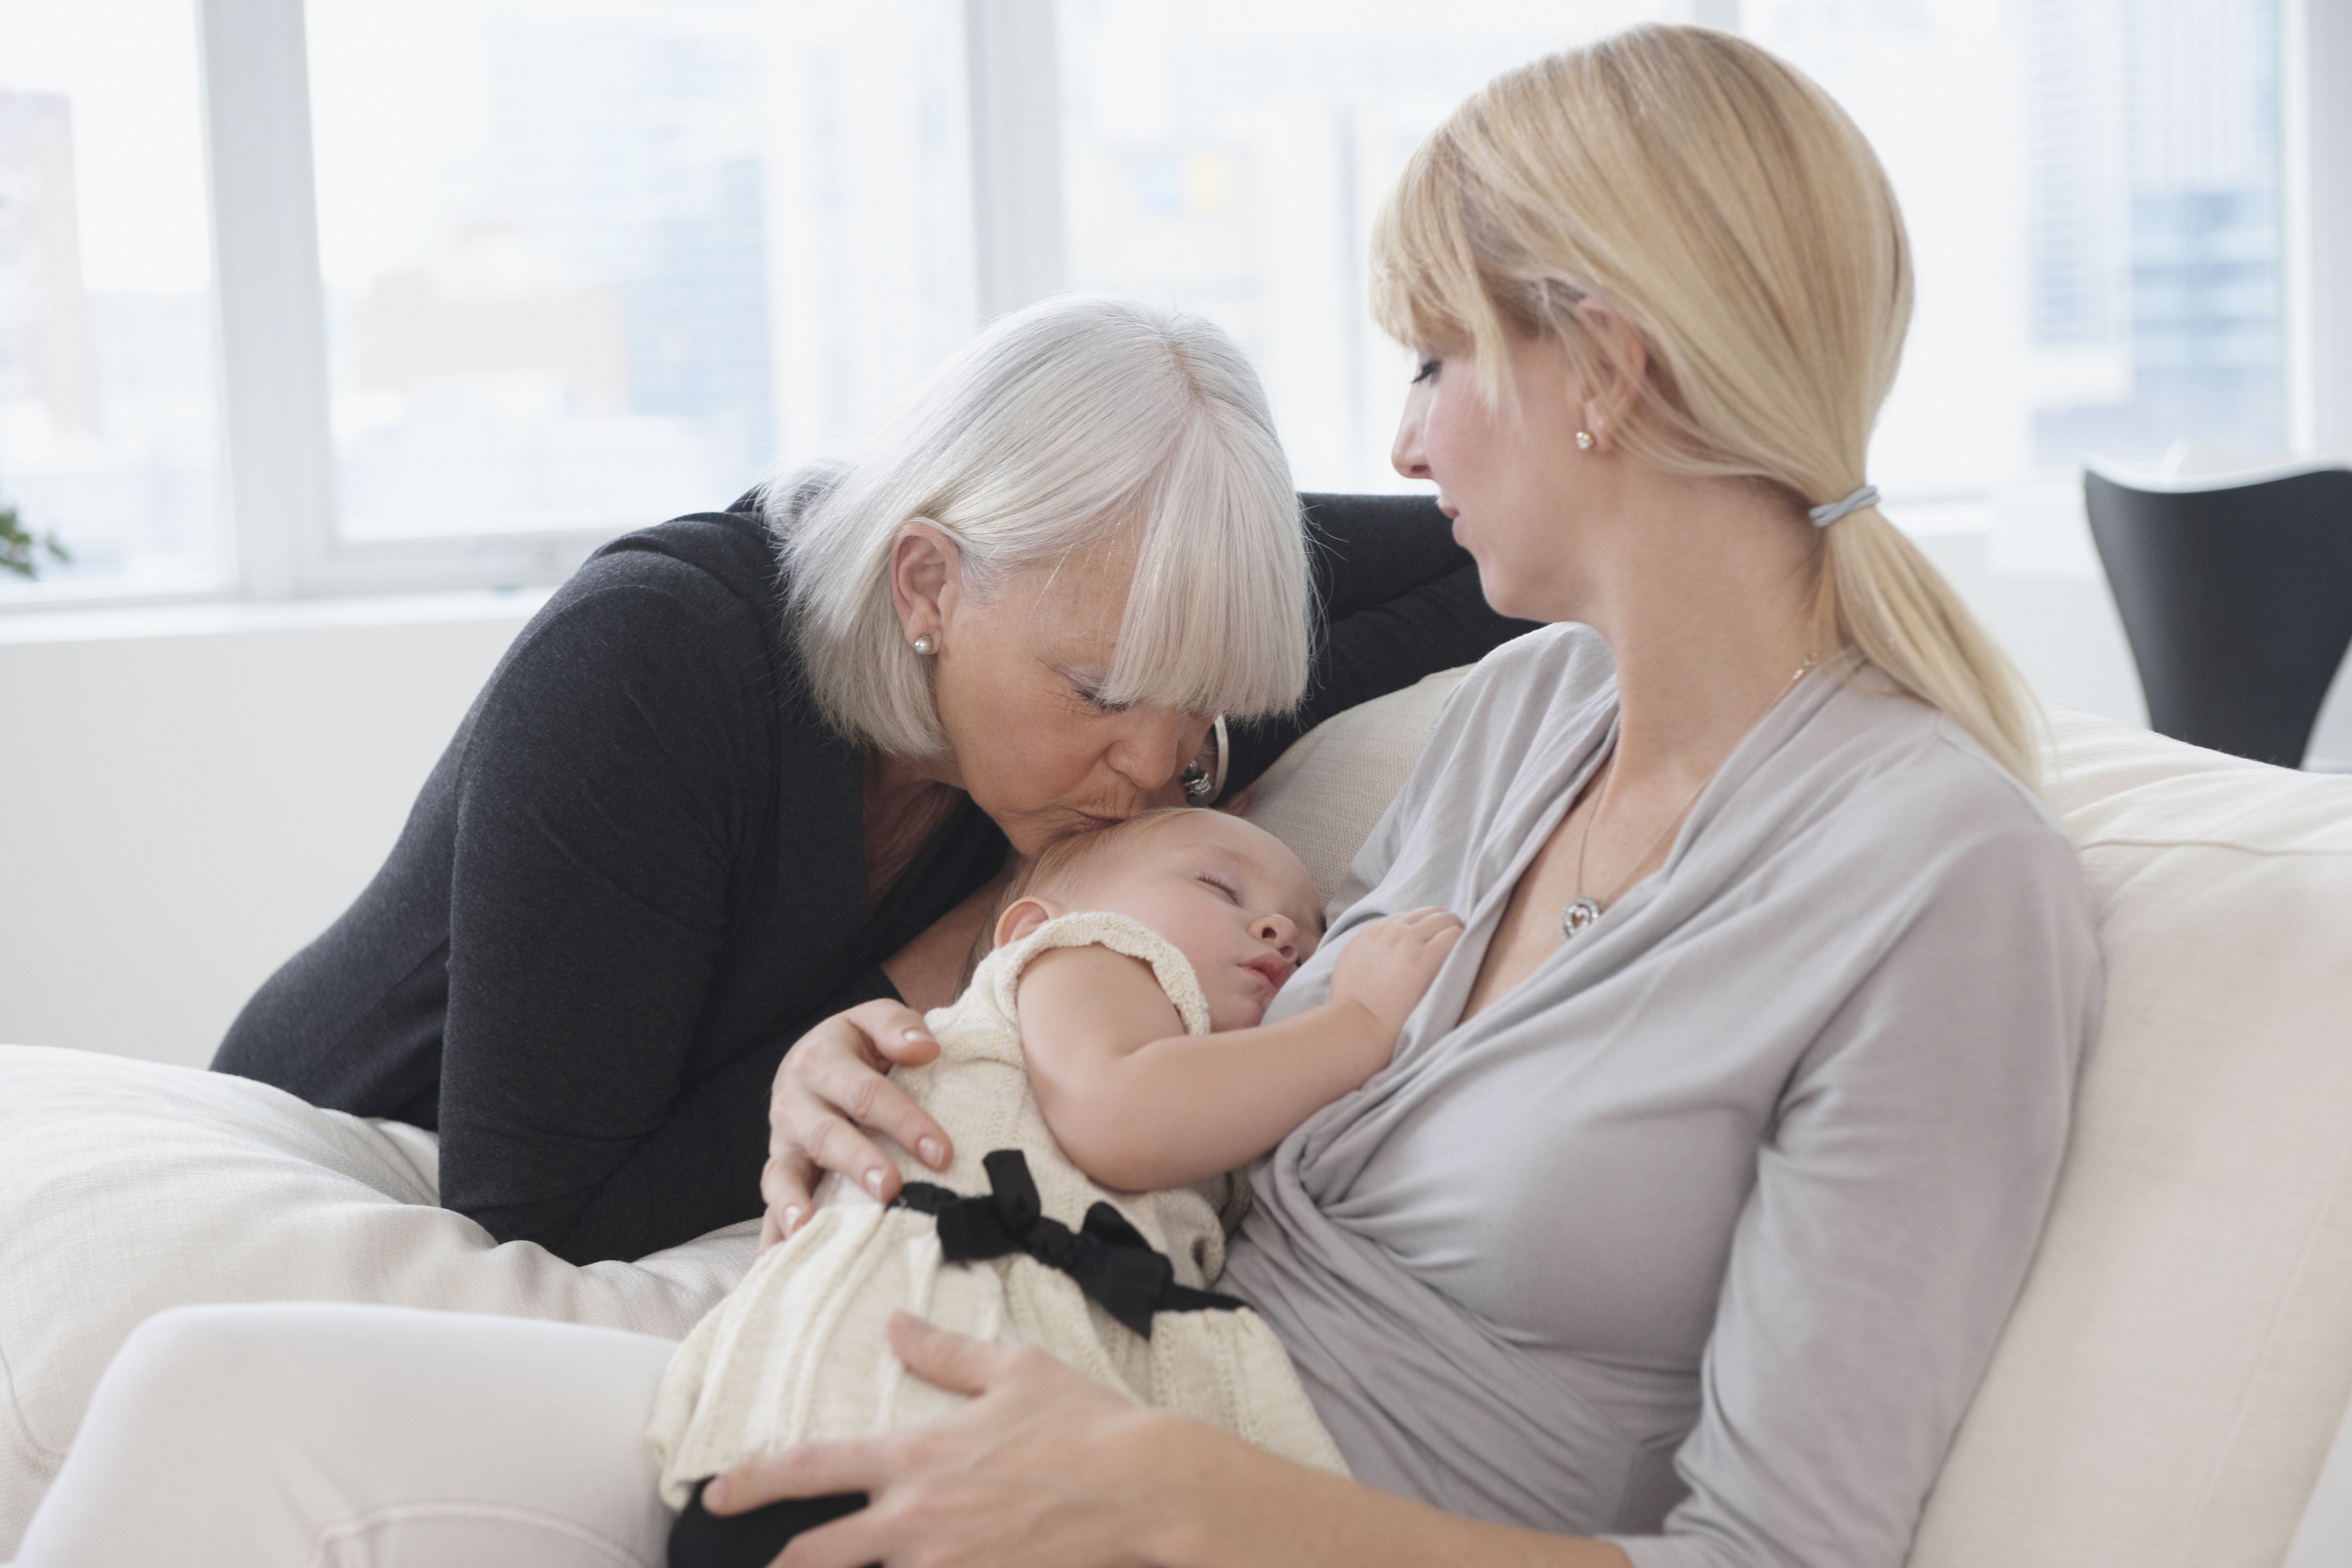 Three generations of Caucasian women relaxing together